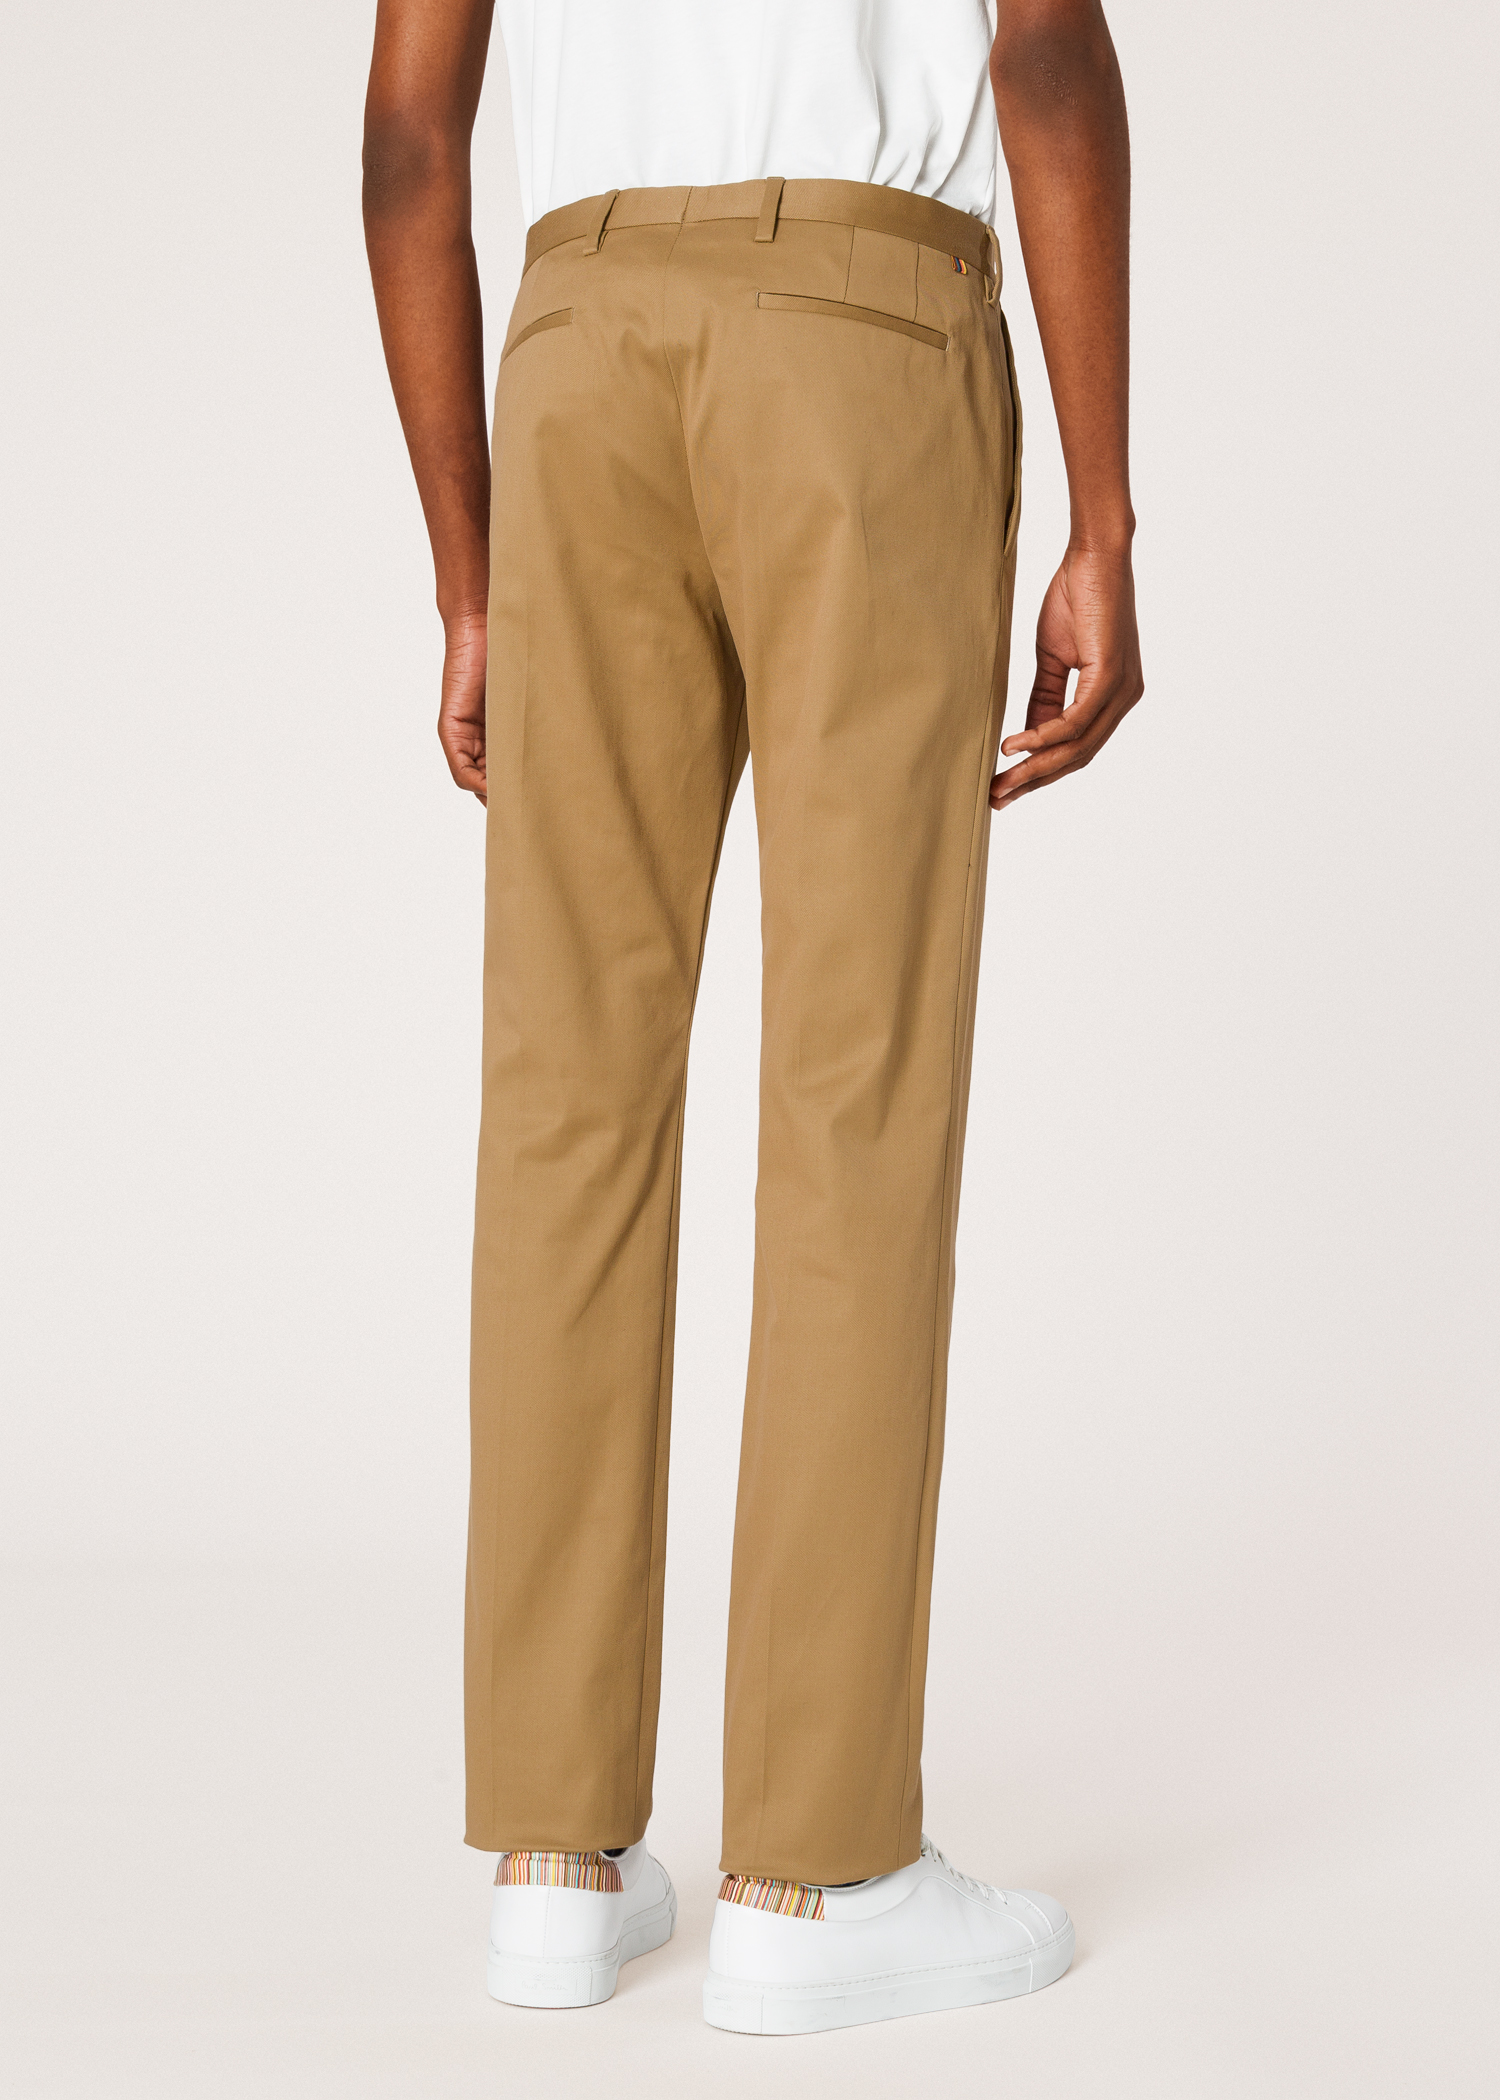 970754368b4336 Model back close up - Men's Slim-Fit Tan Stretch-Cotton Chinos Paul Smith